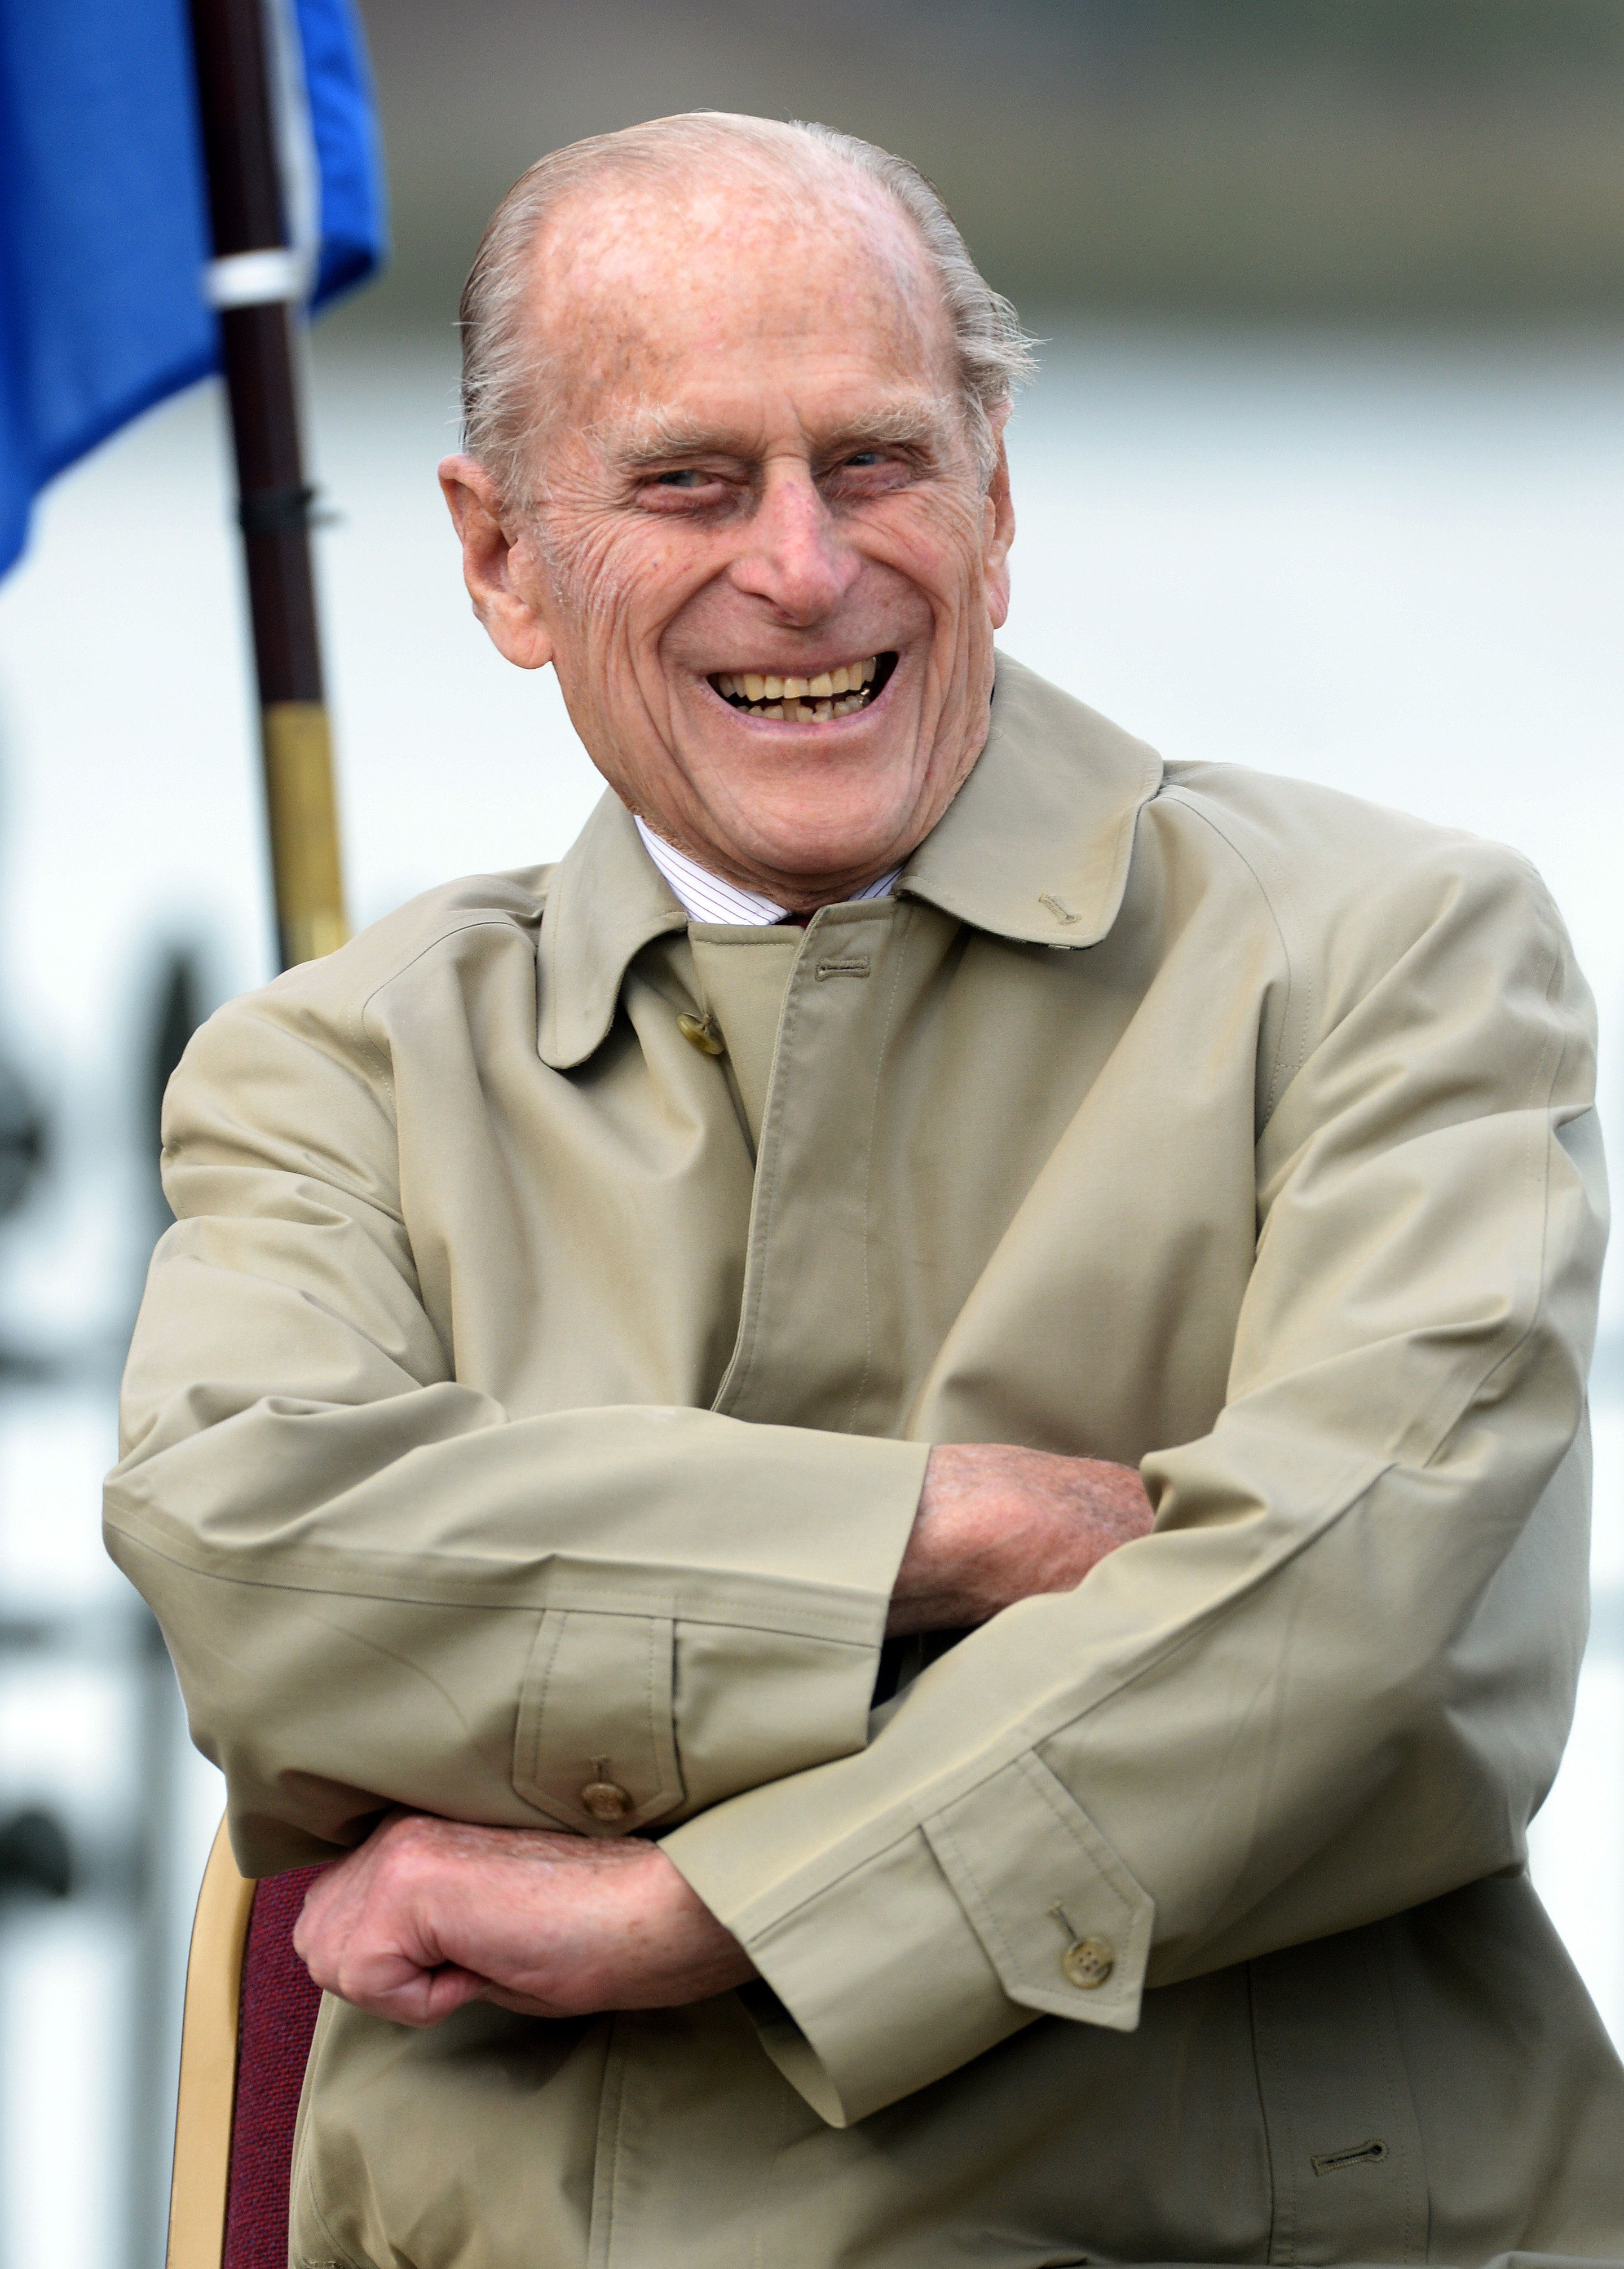 Prince Philip news updates health age and pictures Latest Prince Philip news